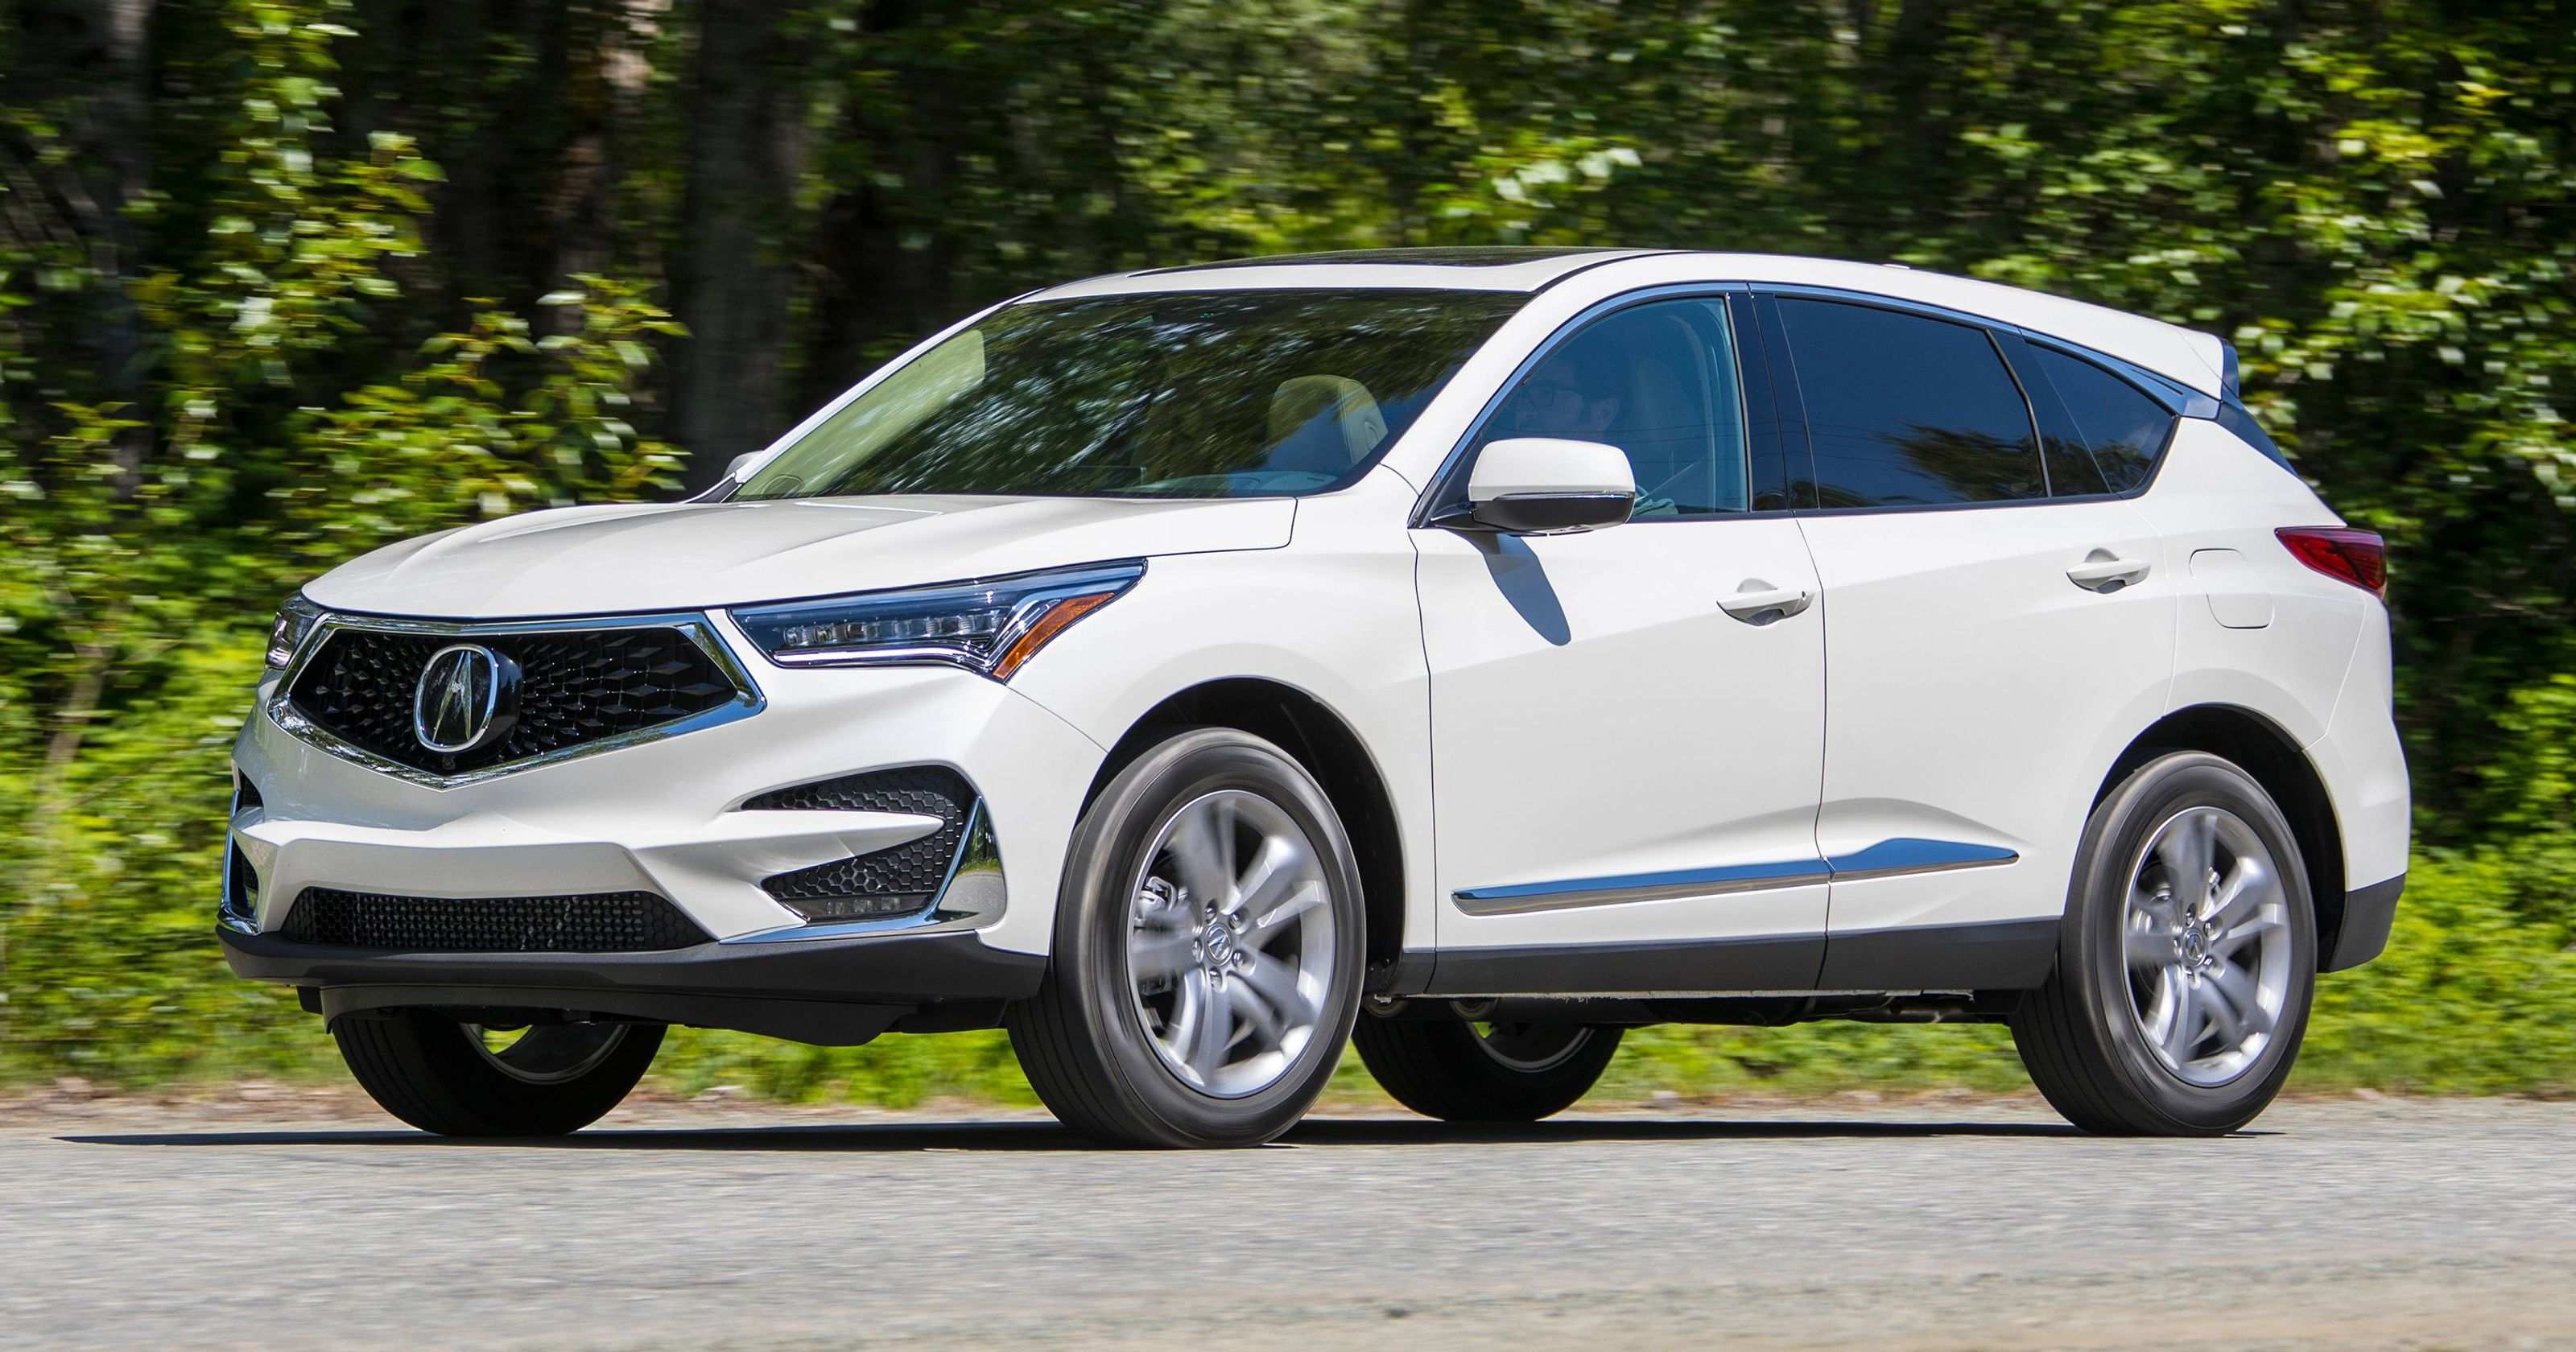 69 All New 2019 Acura Suv Pricing for 2019 Acura Suv